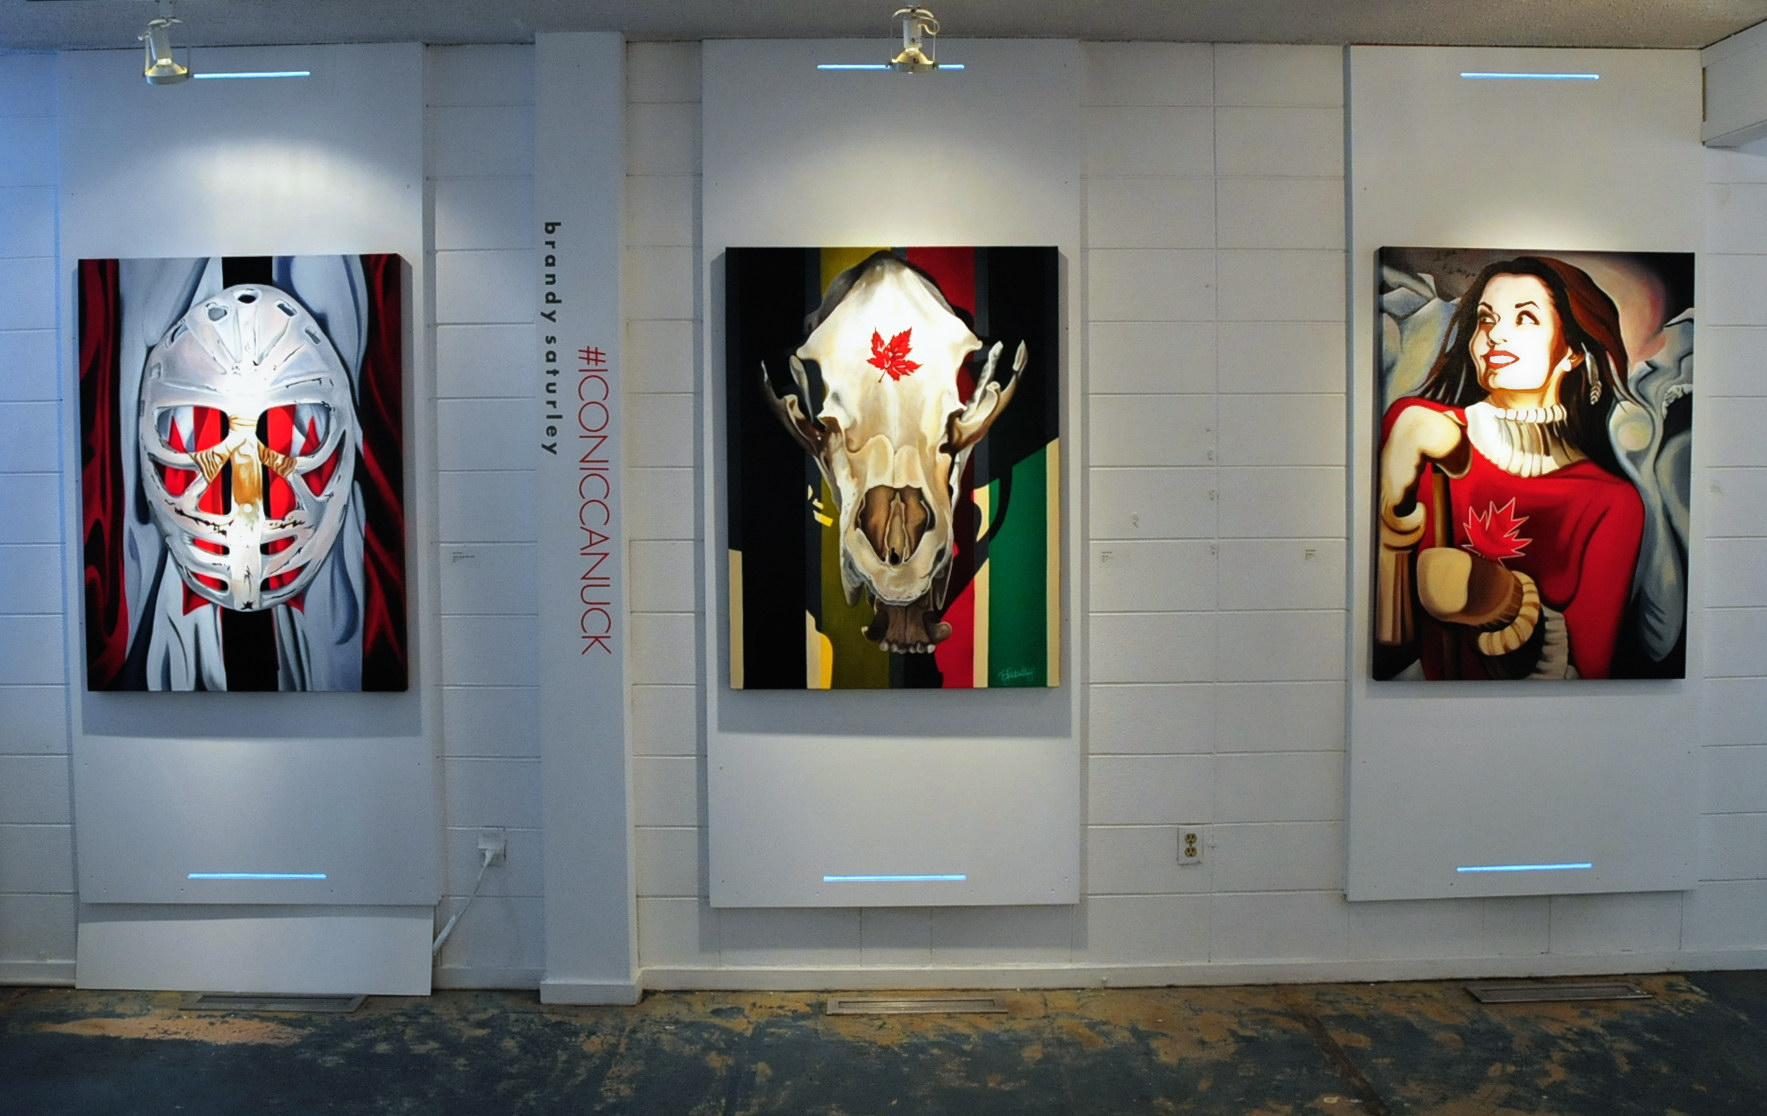 #ICONICCANUCK art show at CARFAC Alberta - Brandy Saturley